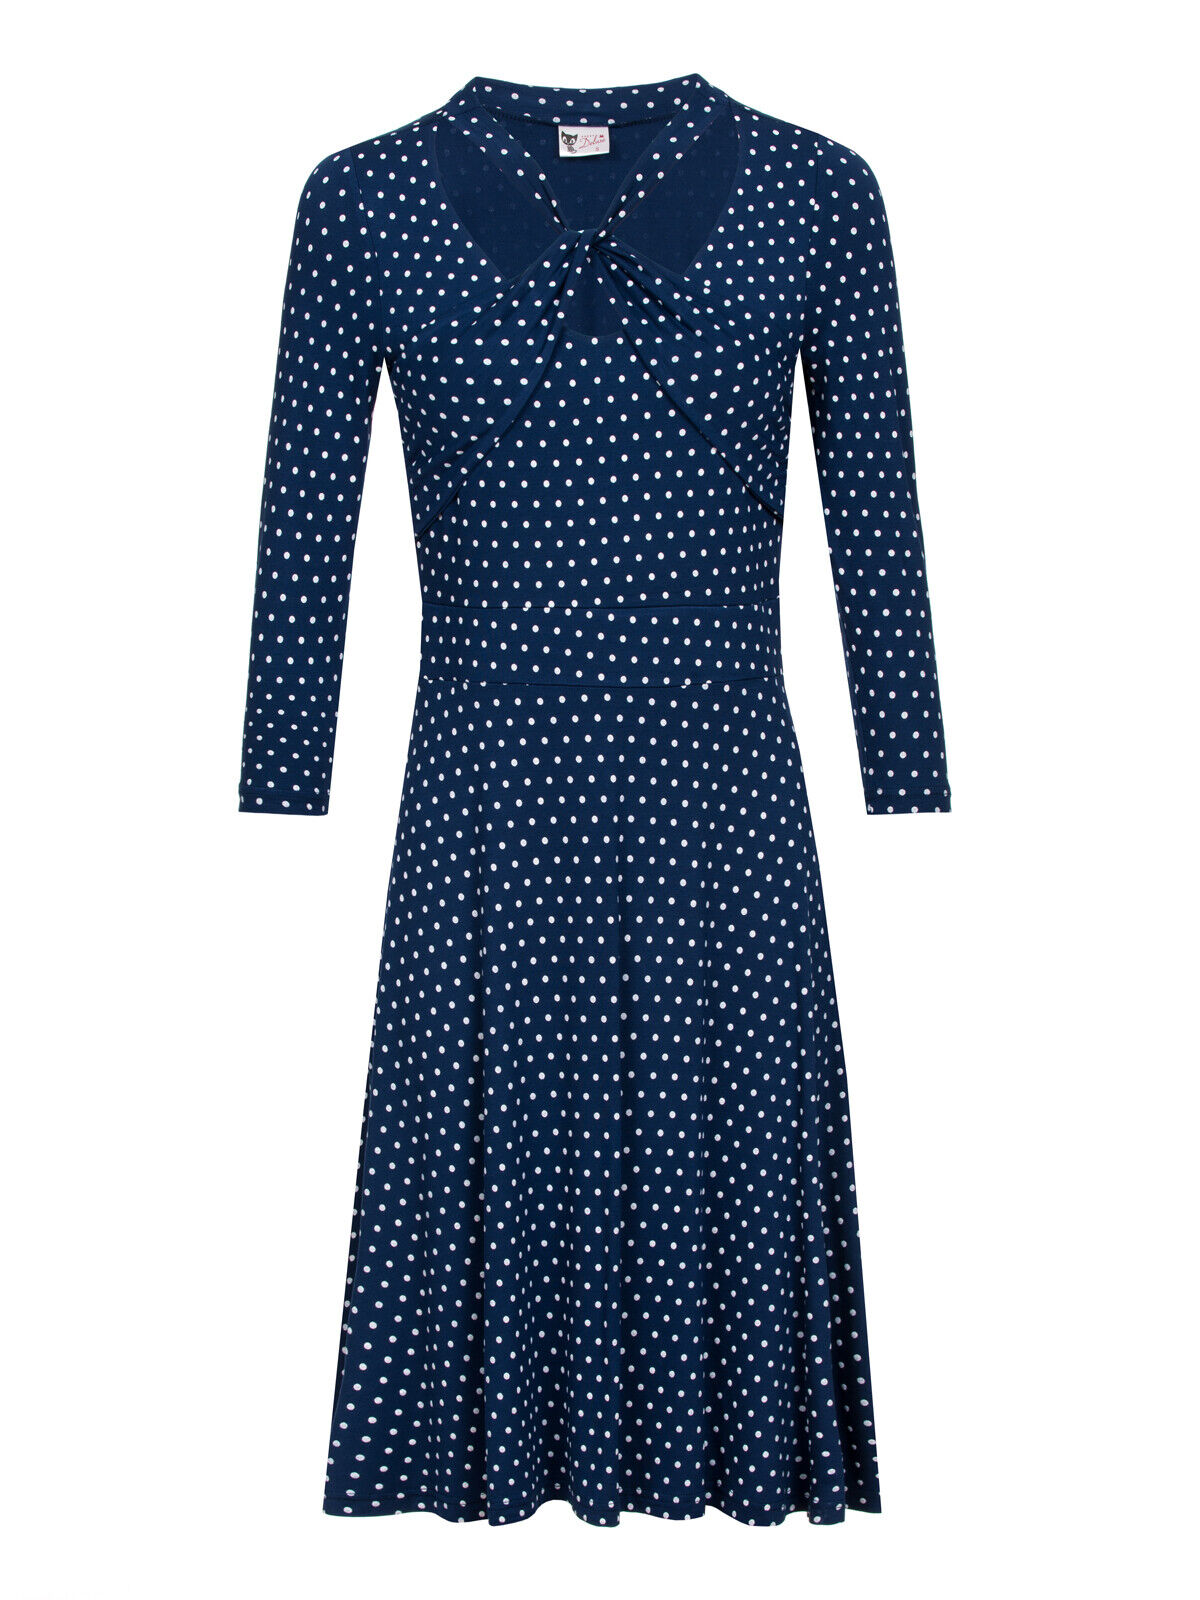 Pussy Deluxe Damen Kleid Lovely Marine Knotted Dress